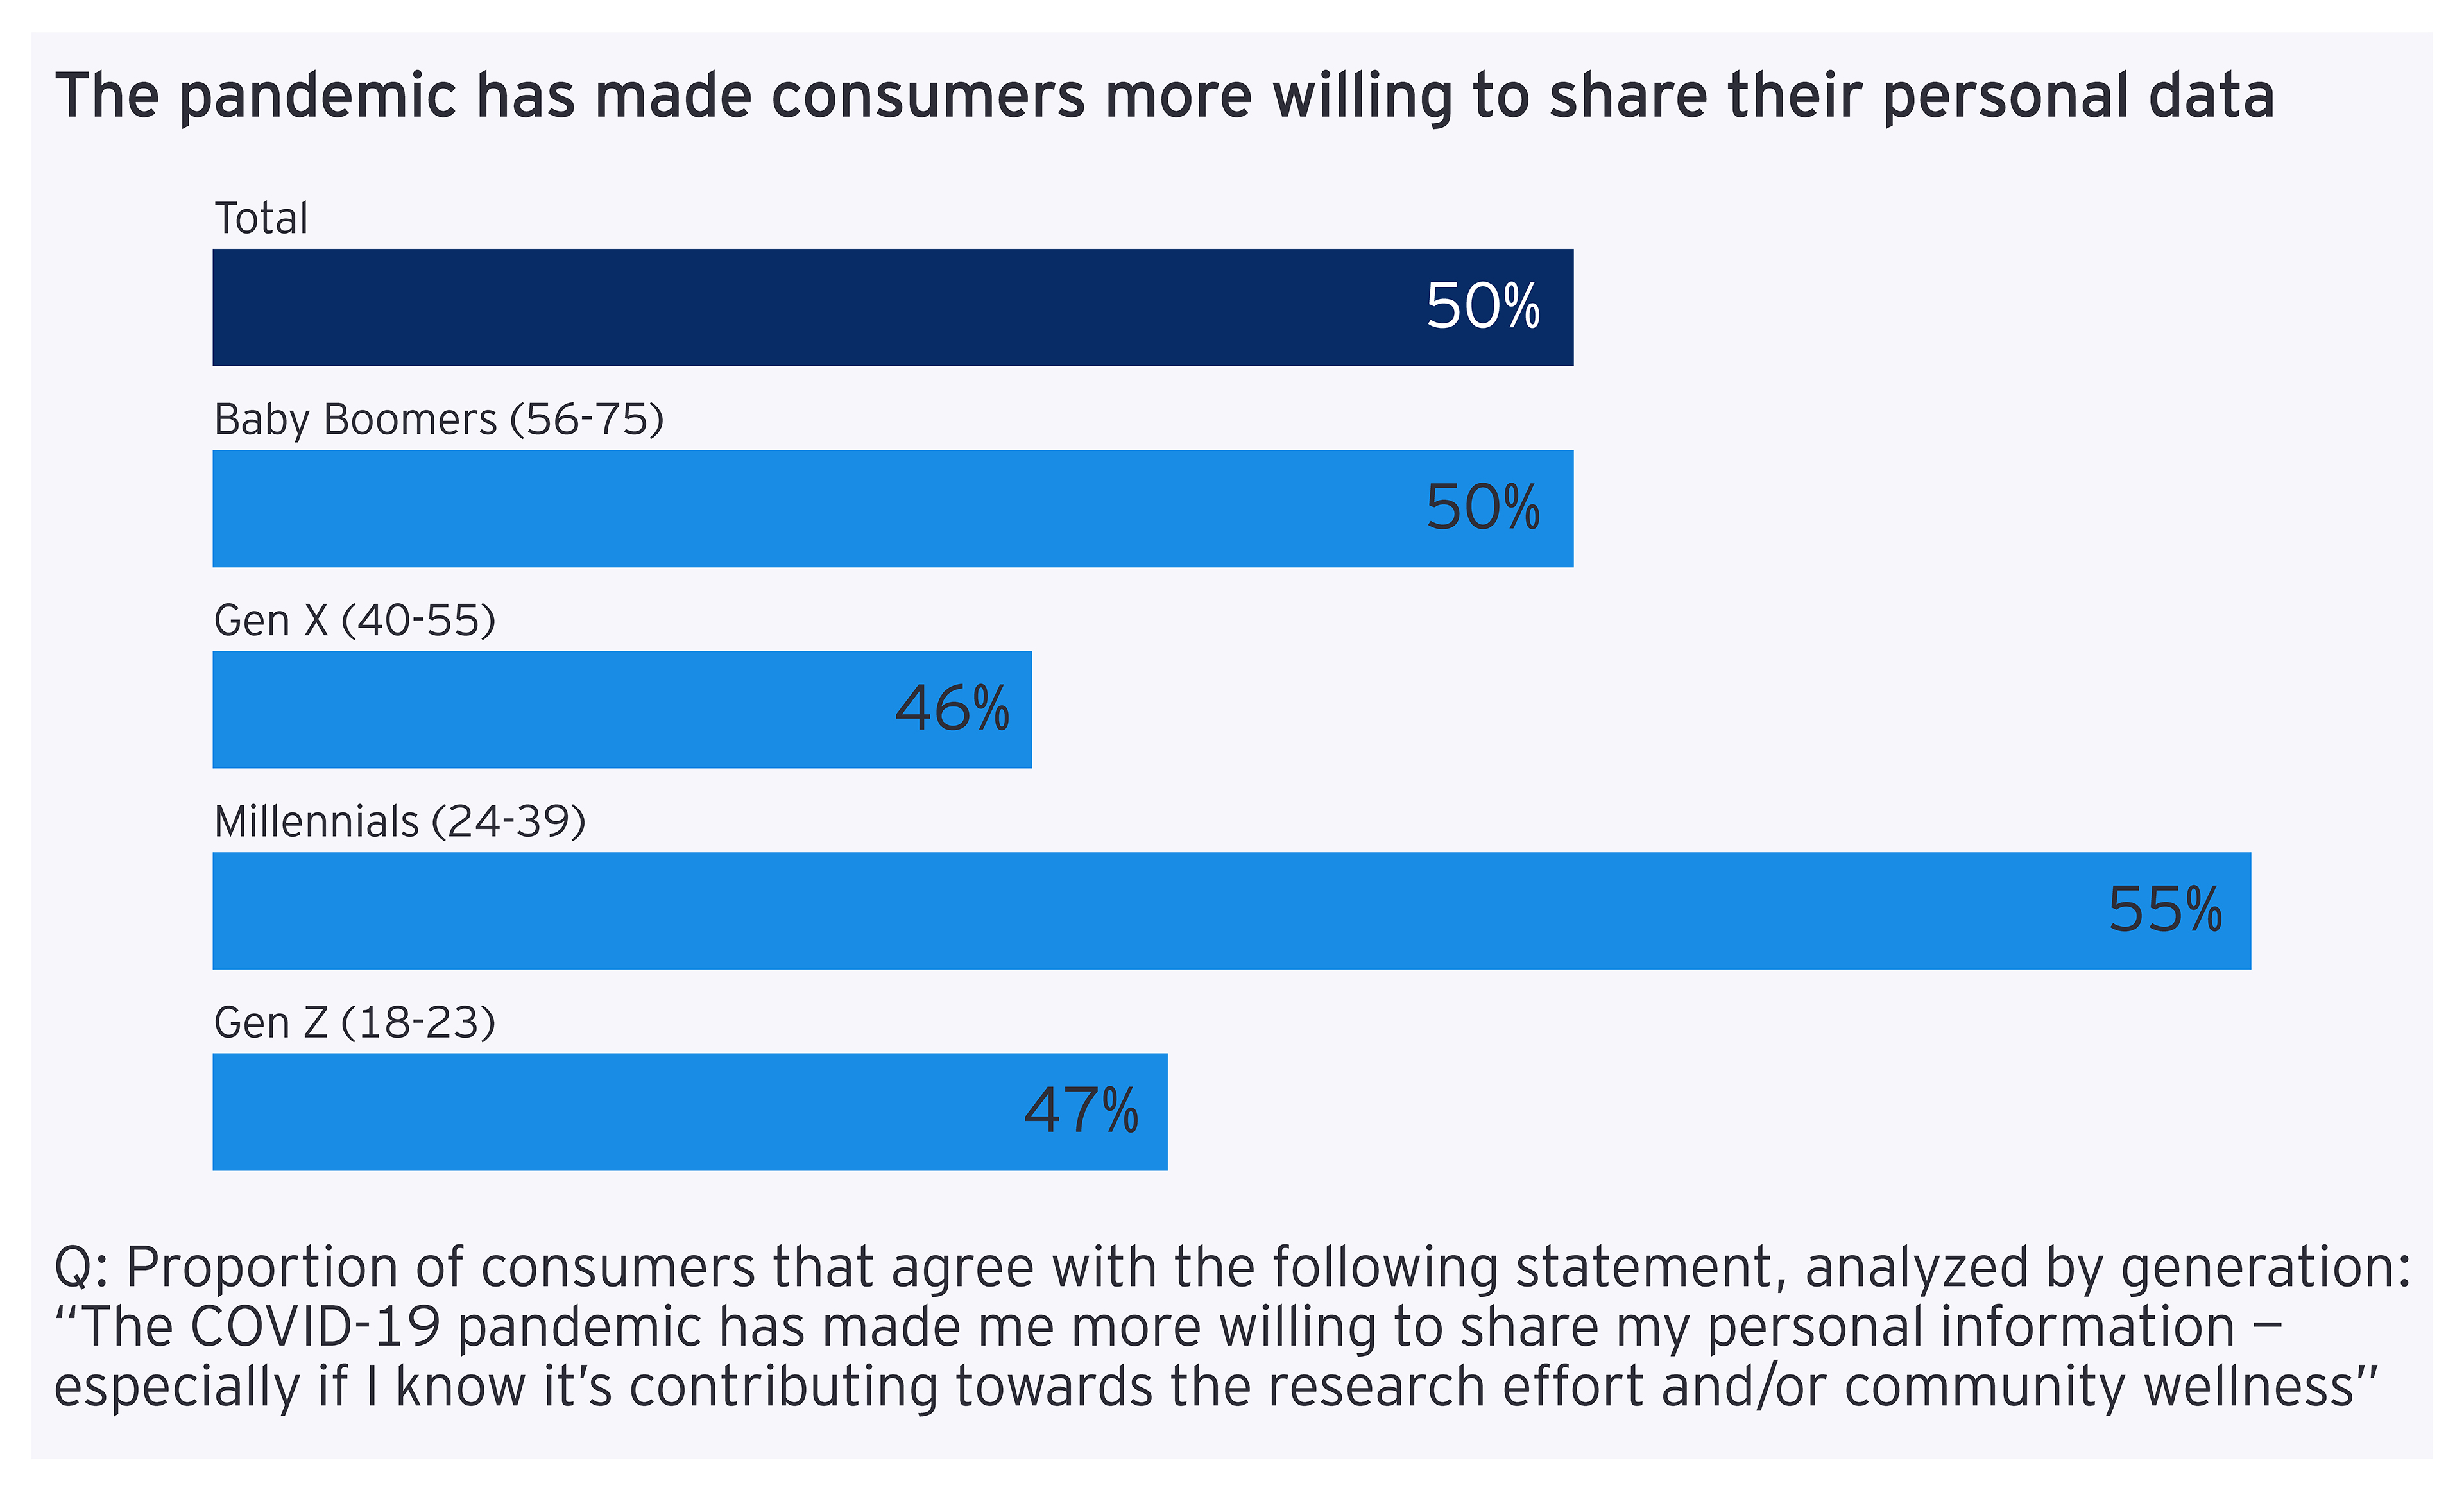 Personal data share